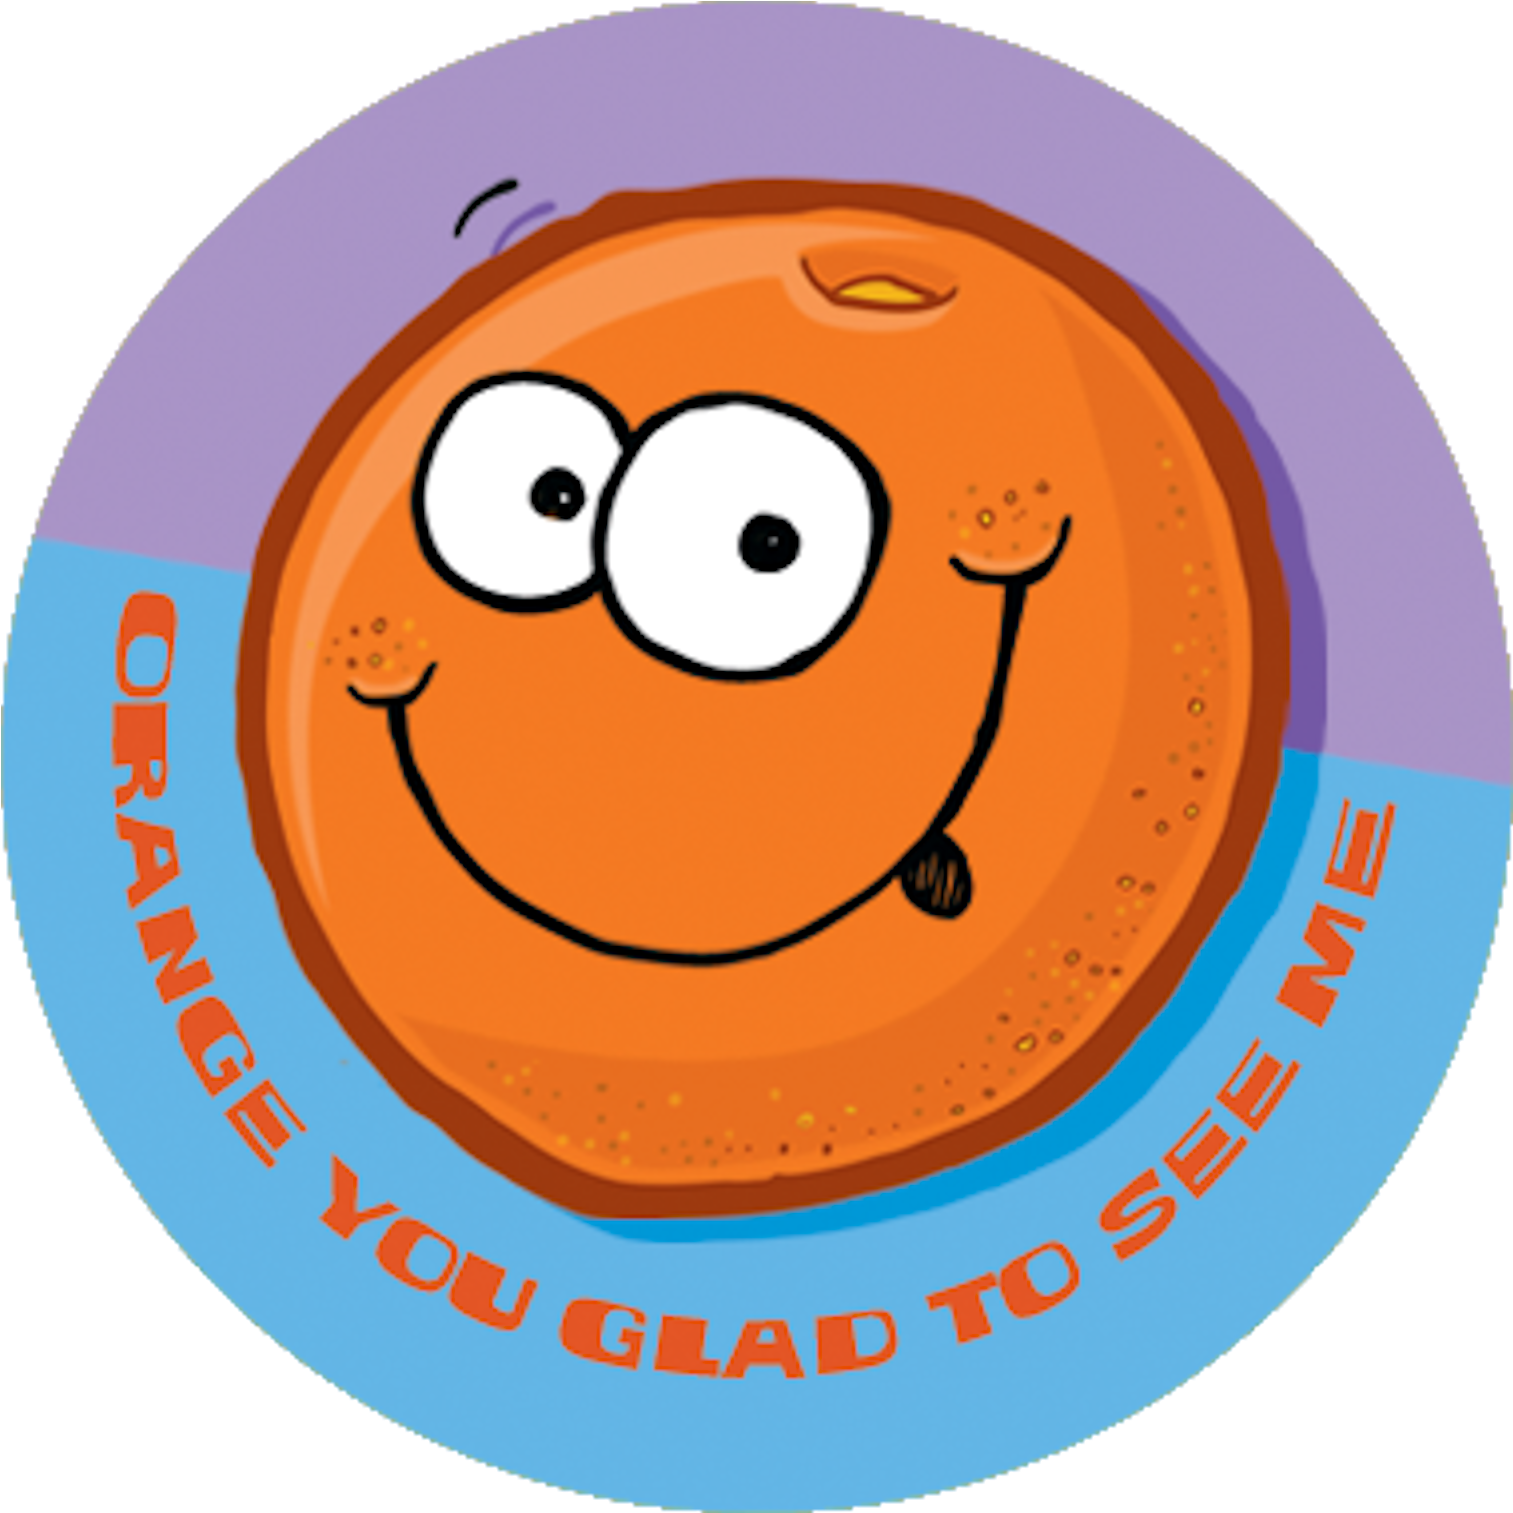 Scratch and sniff clipart jpg freeuse library More Views - Scratch N Sniff Stickers Orange Clipart - Full ... jpg freeuse library